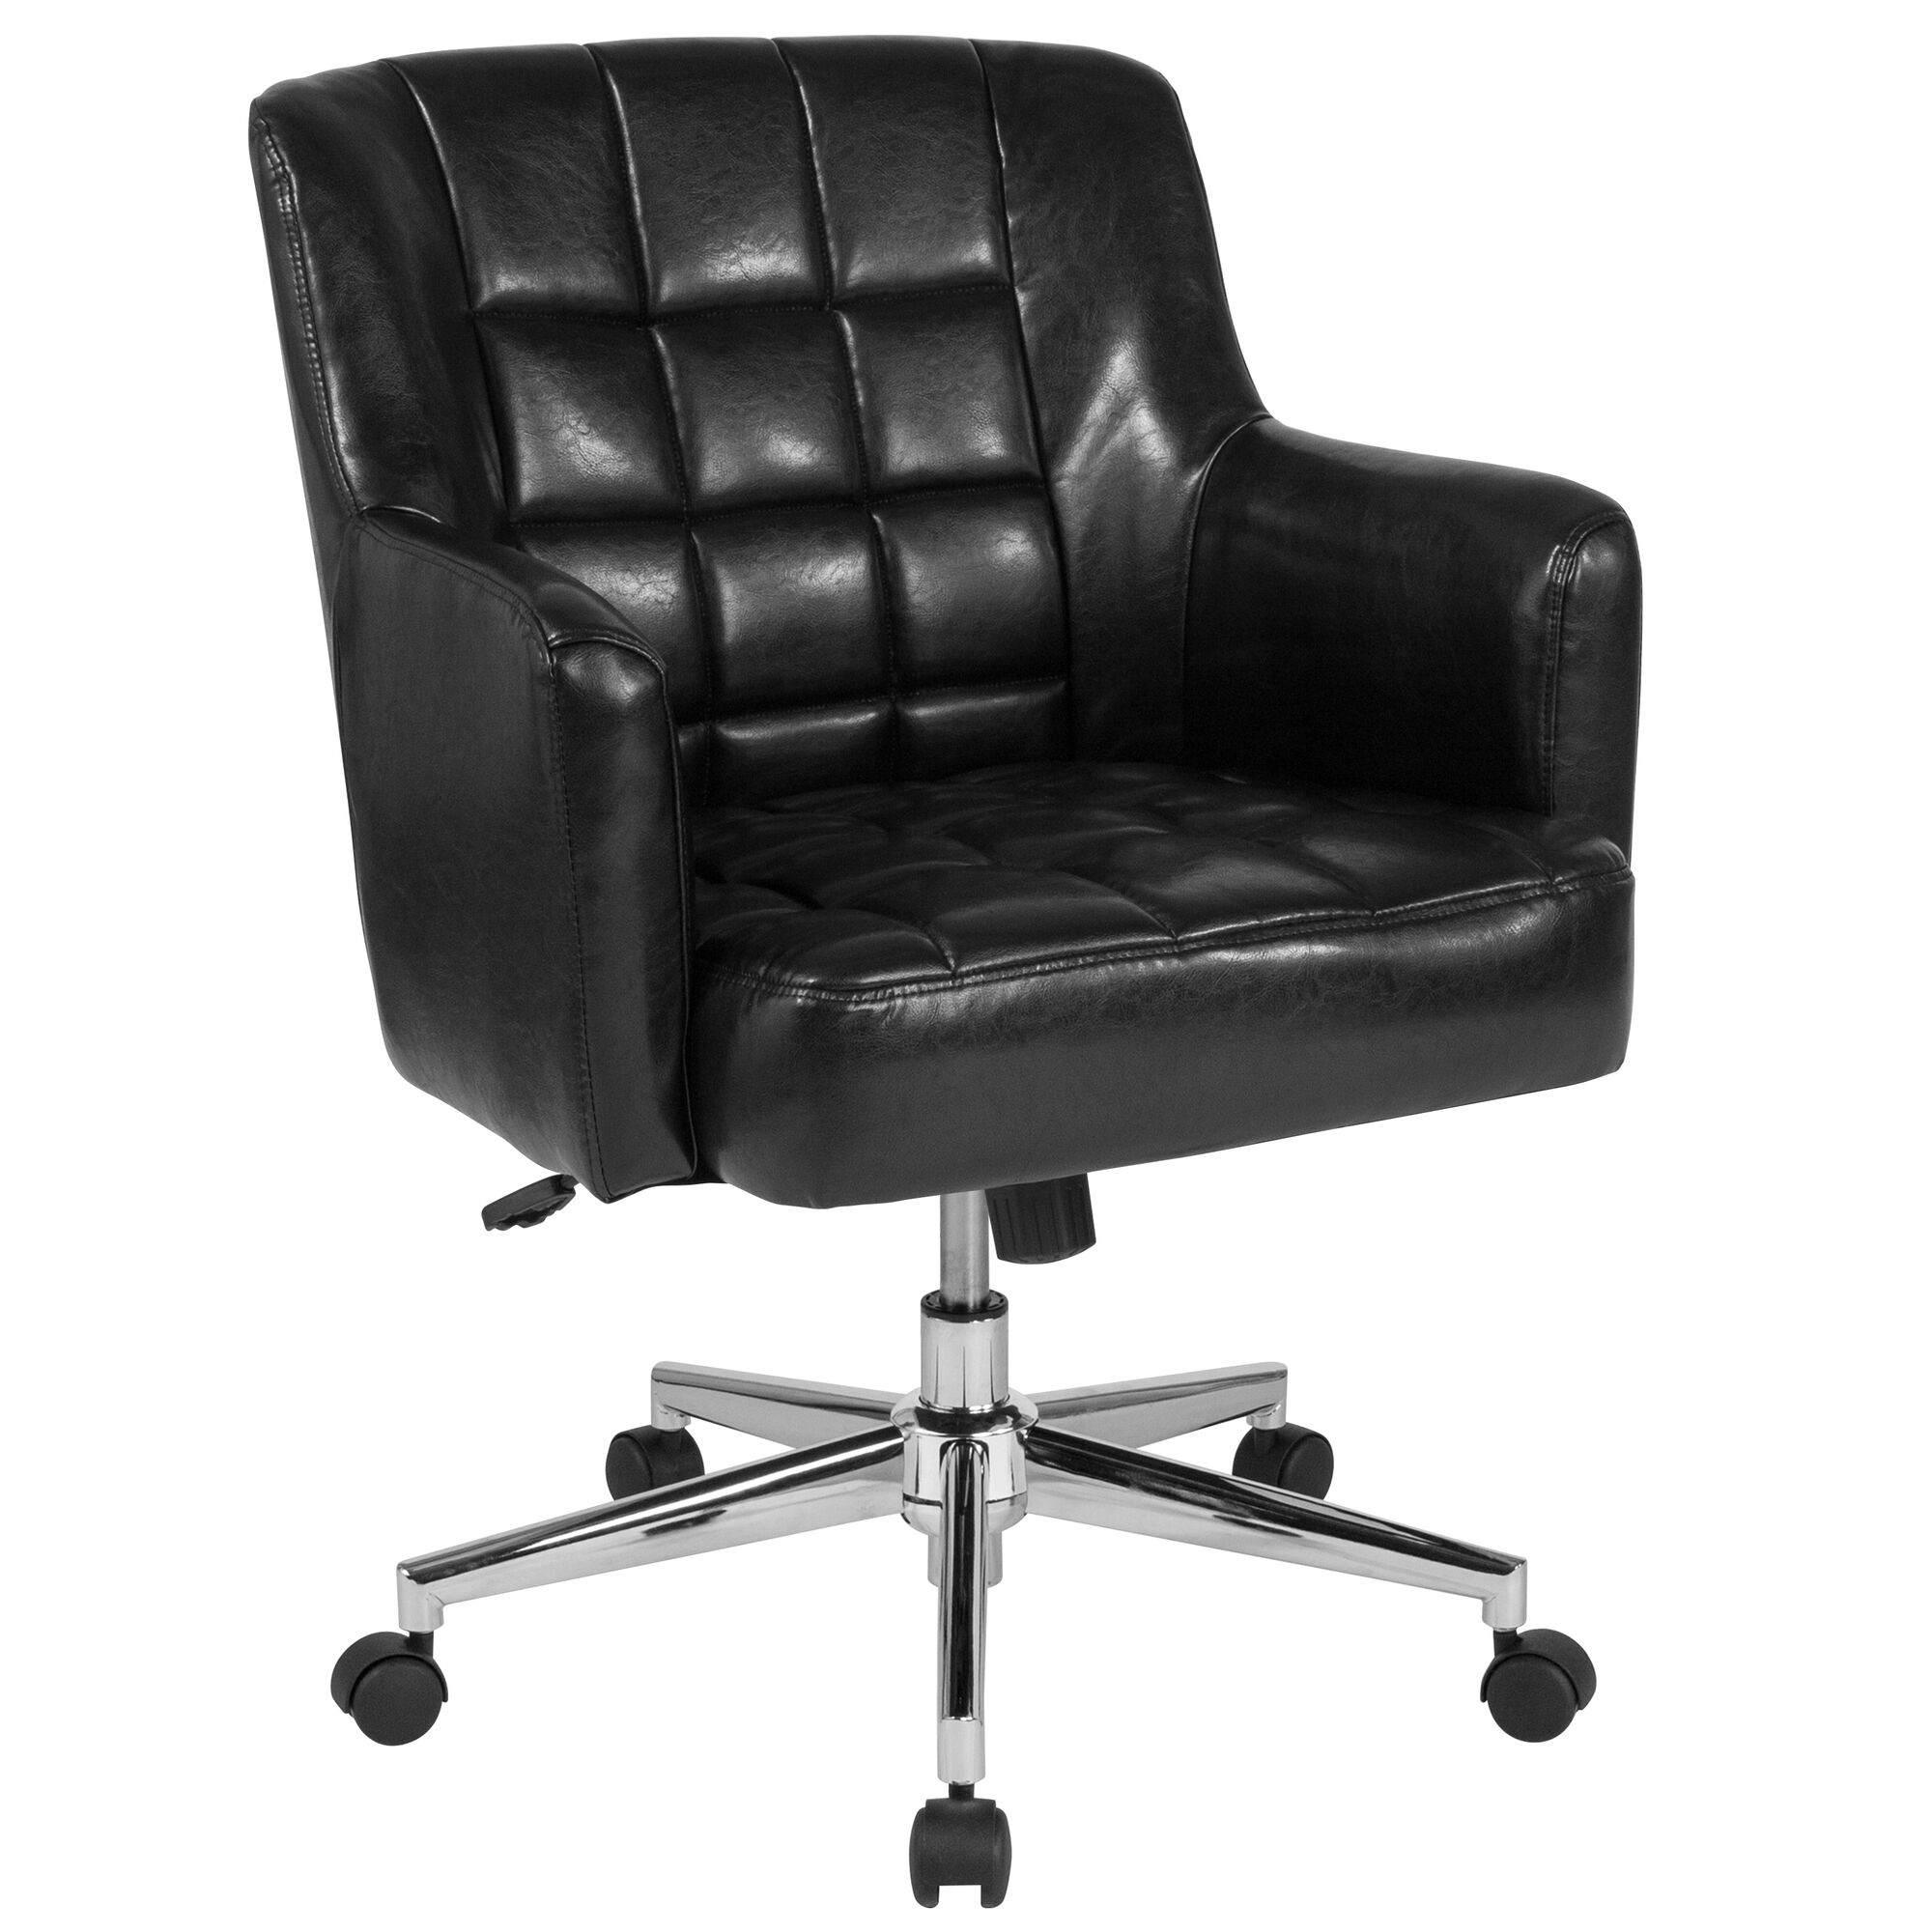 Groovy Laone Home And Office Upholstered Mid Back Chair In Black Leather Spiritservingveterans Wood Chair Design Ideas Spiritservingveteransorg